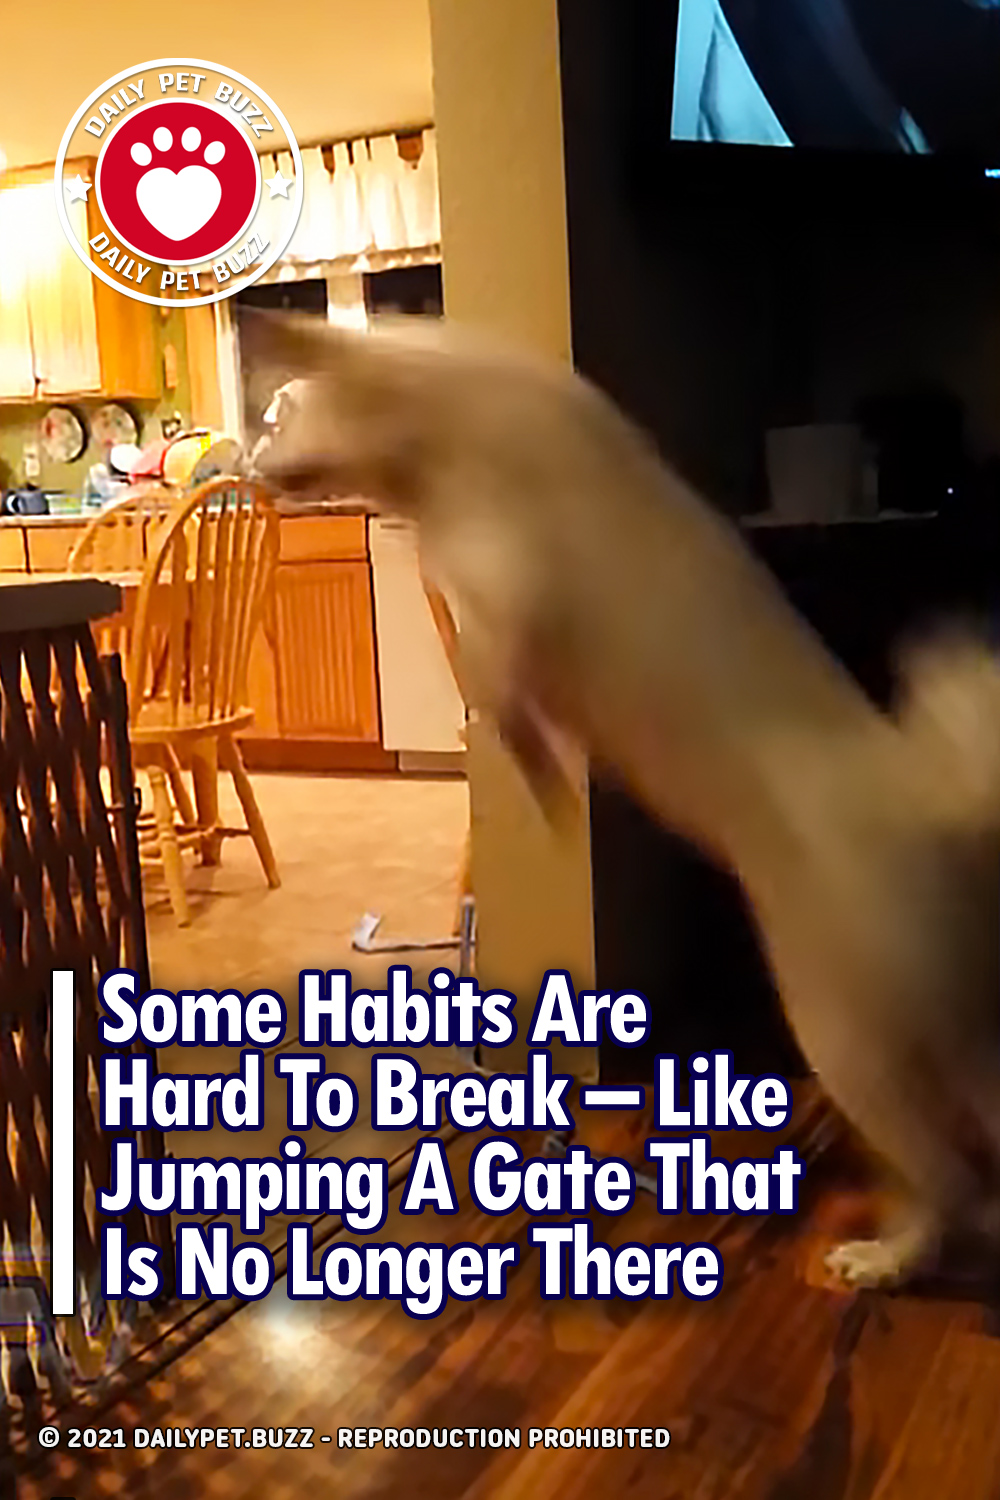 Some Habits Are Hard To Break – Like Jumping A Gate That Is No Longer There